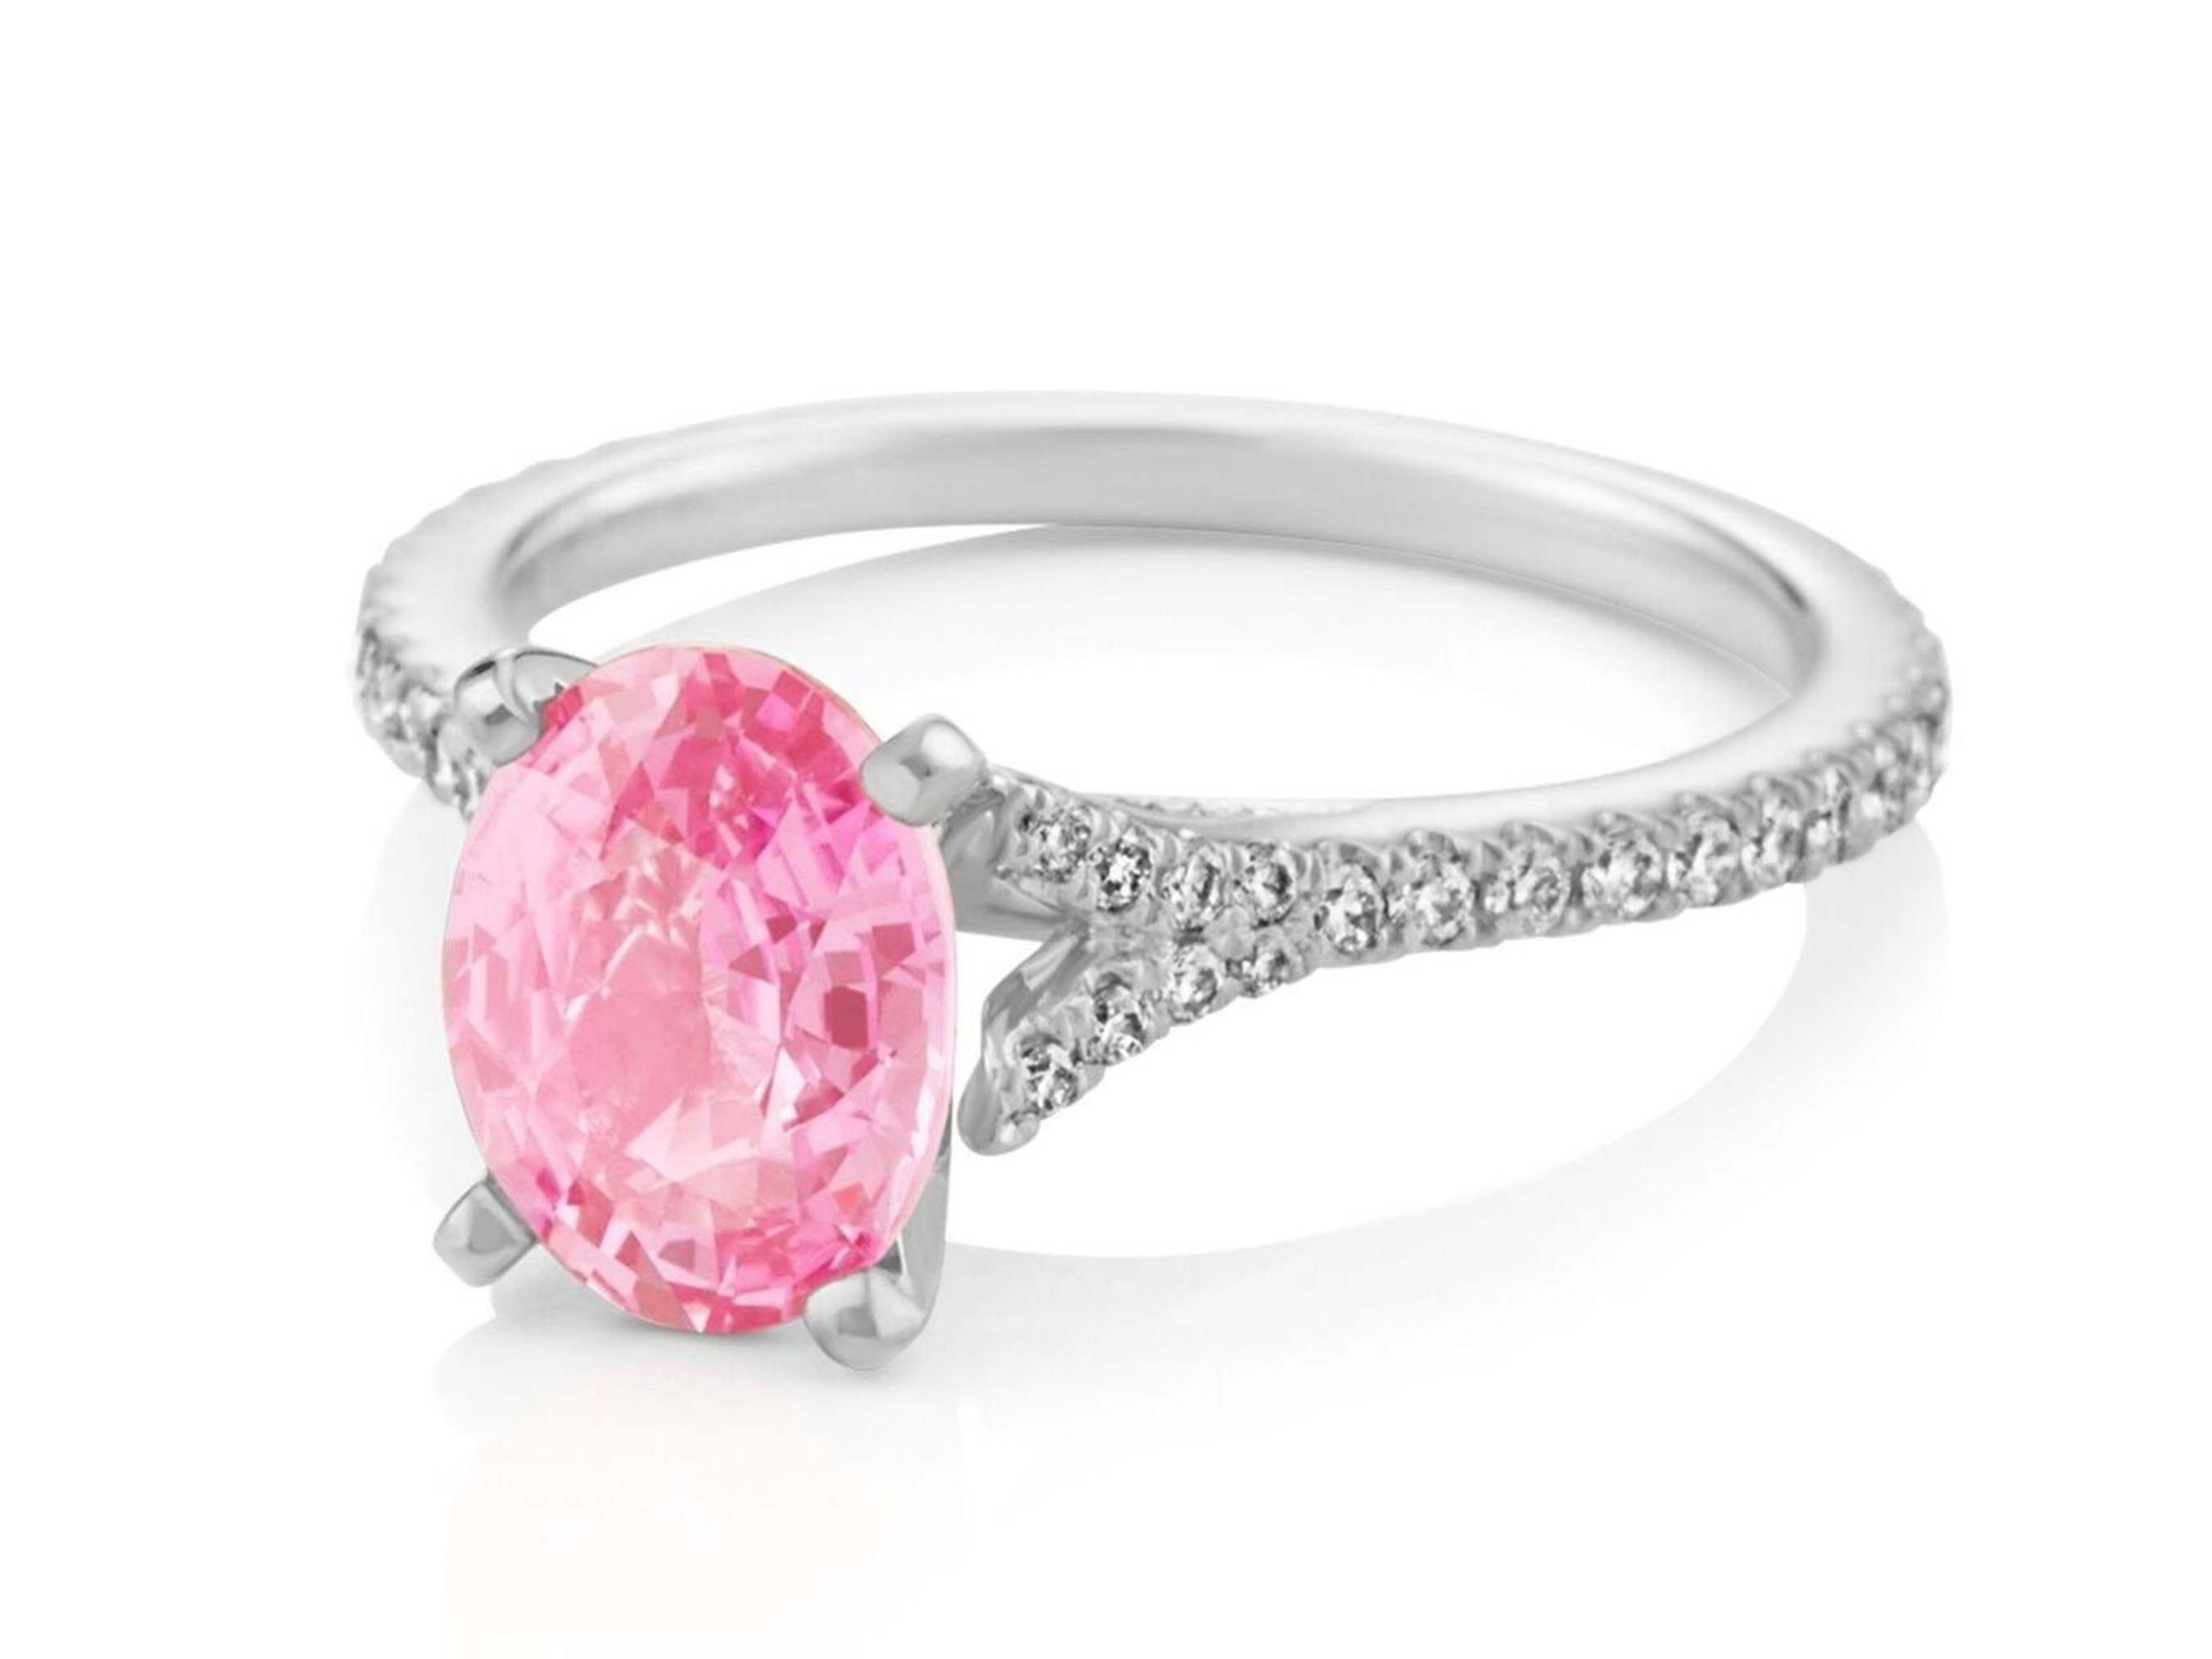 Shane Co. Pink Sapphire, Diamond and Platinum Engagement Ring - Seven Engagement Rings for Christmas 2016